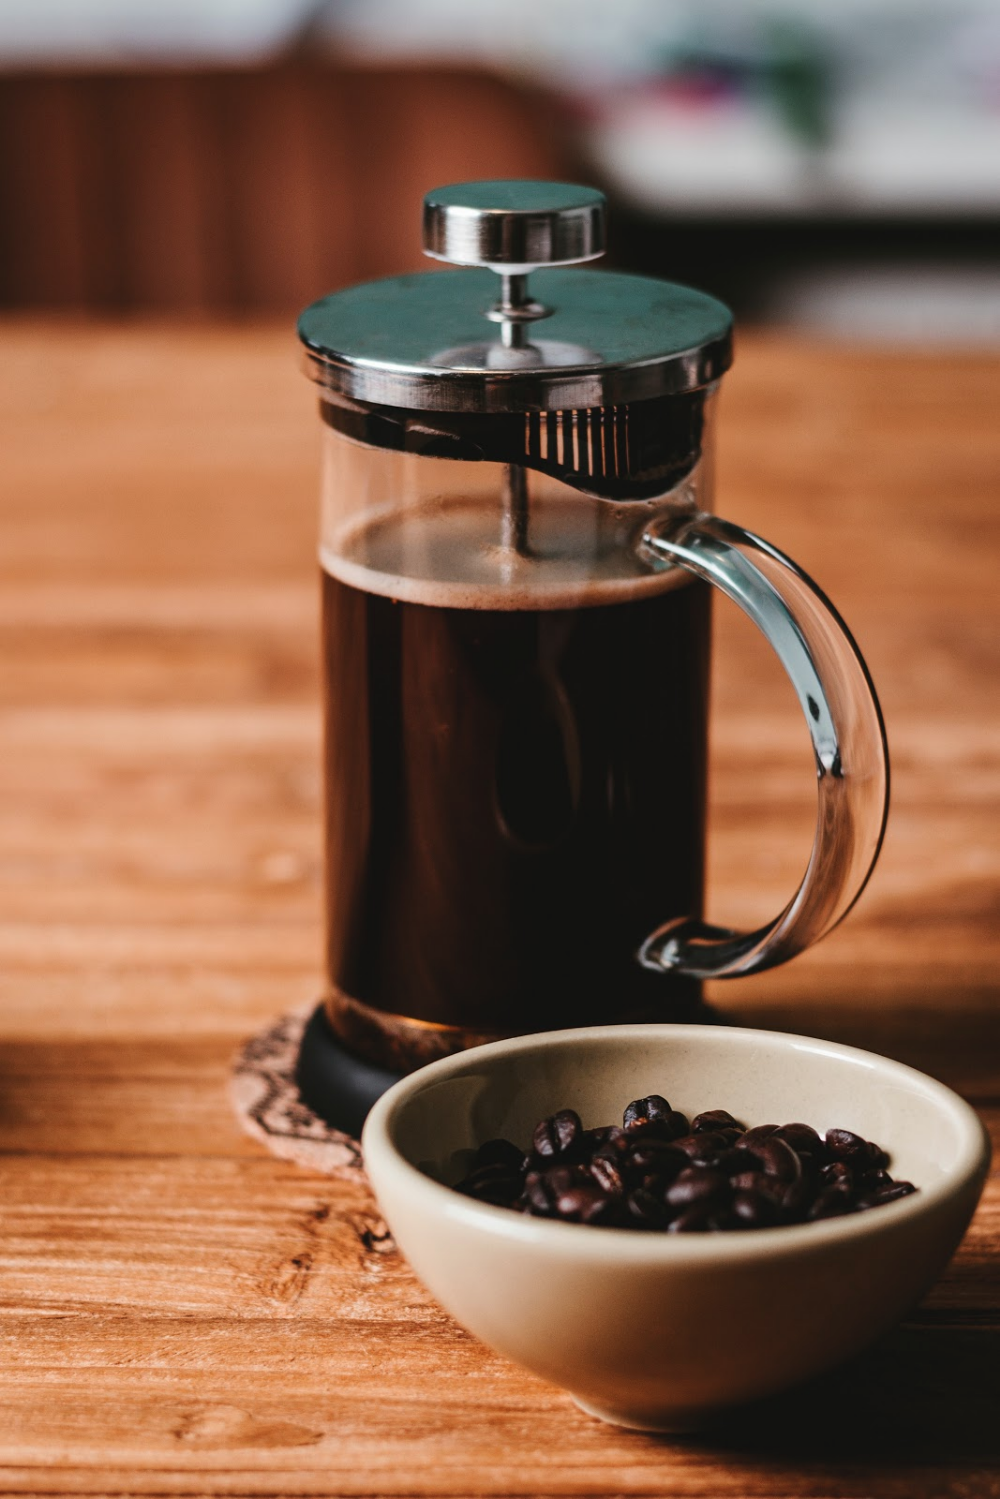 Incorporate Beautiful Coffee Stations For Your Home in